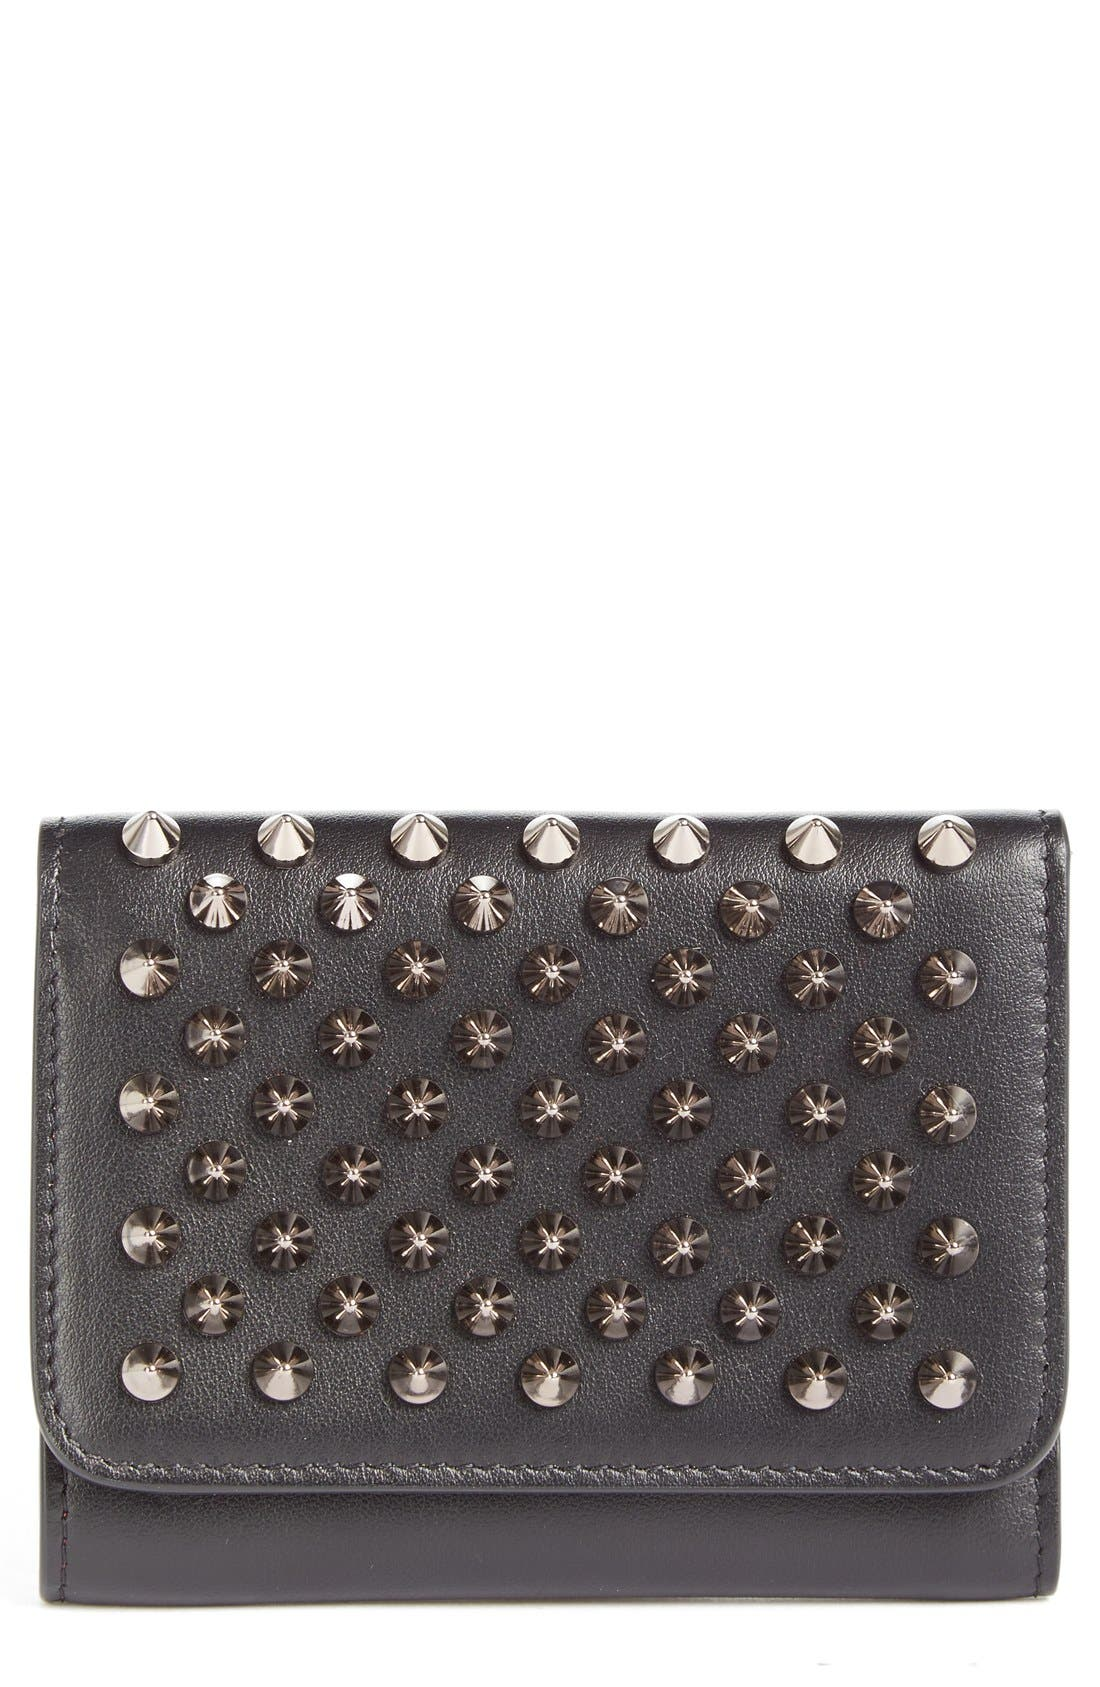 Alternate Image 1 Selected - Christian Louboutin Macaron Leather French Wallet